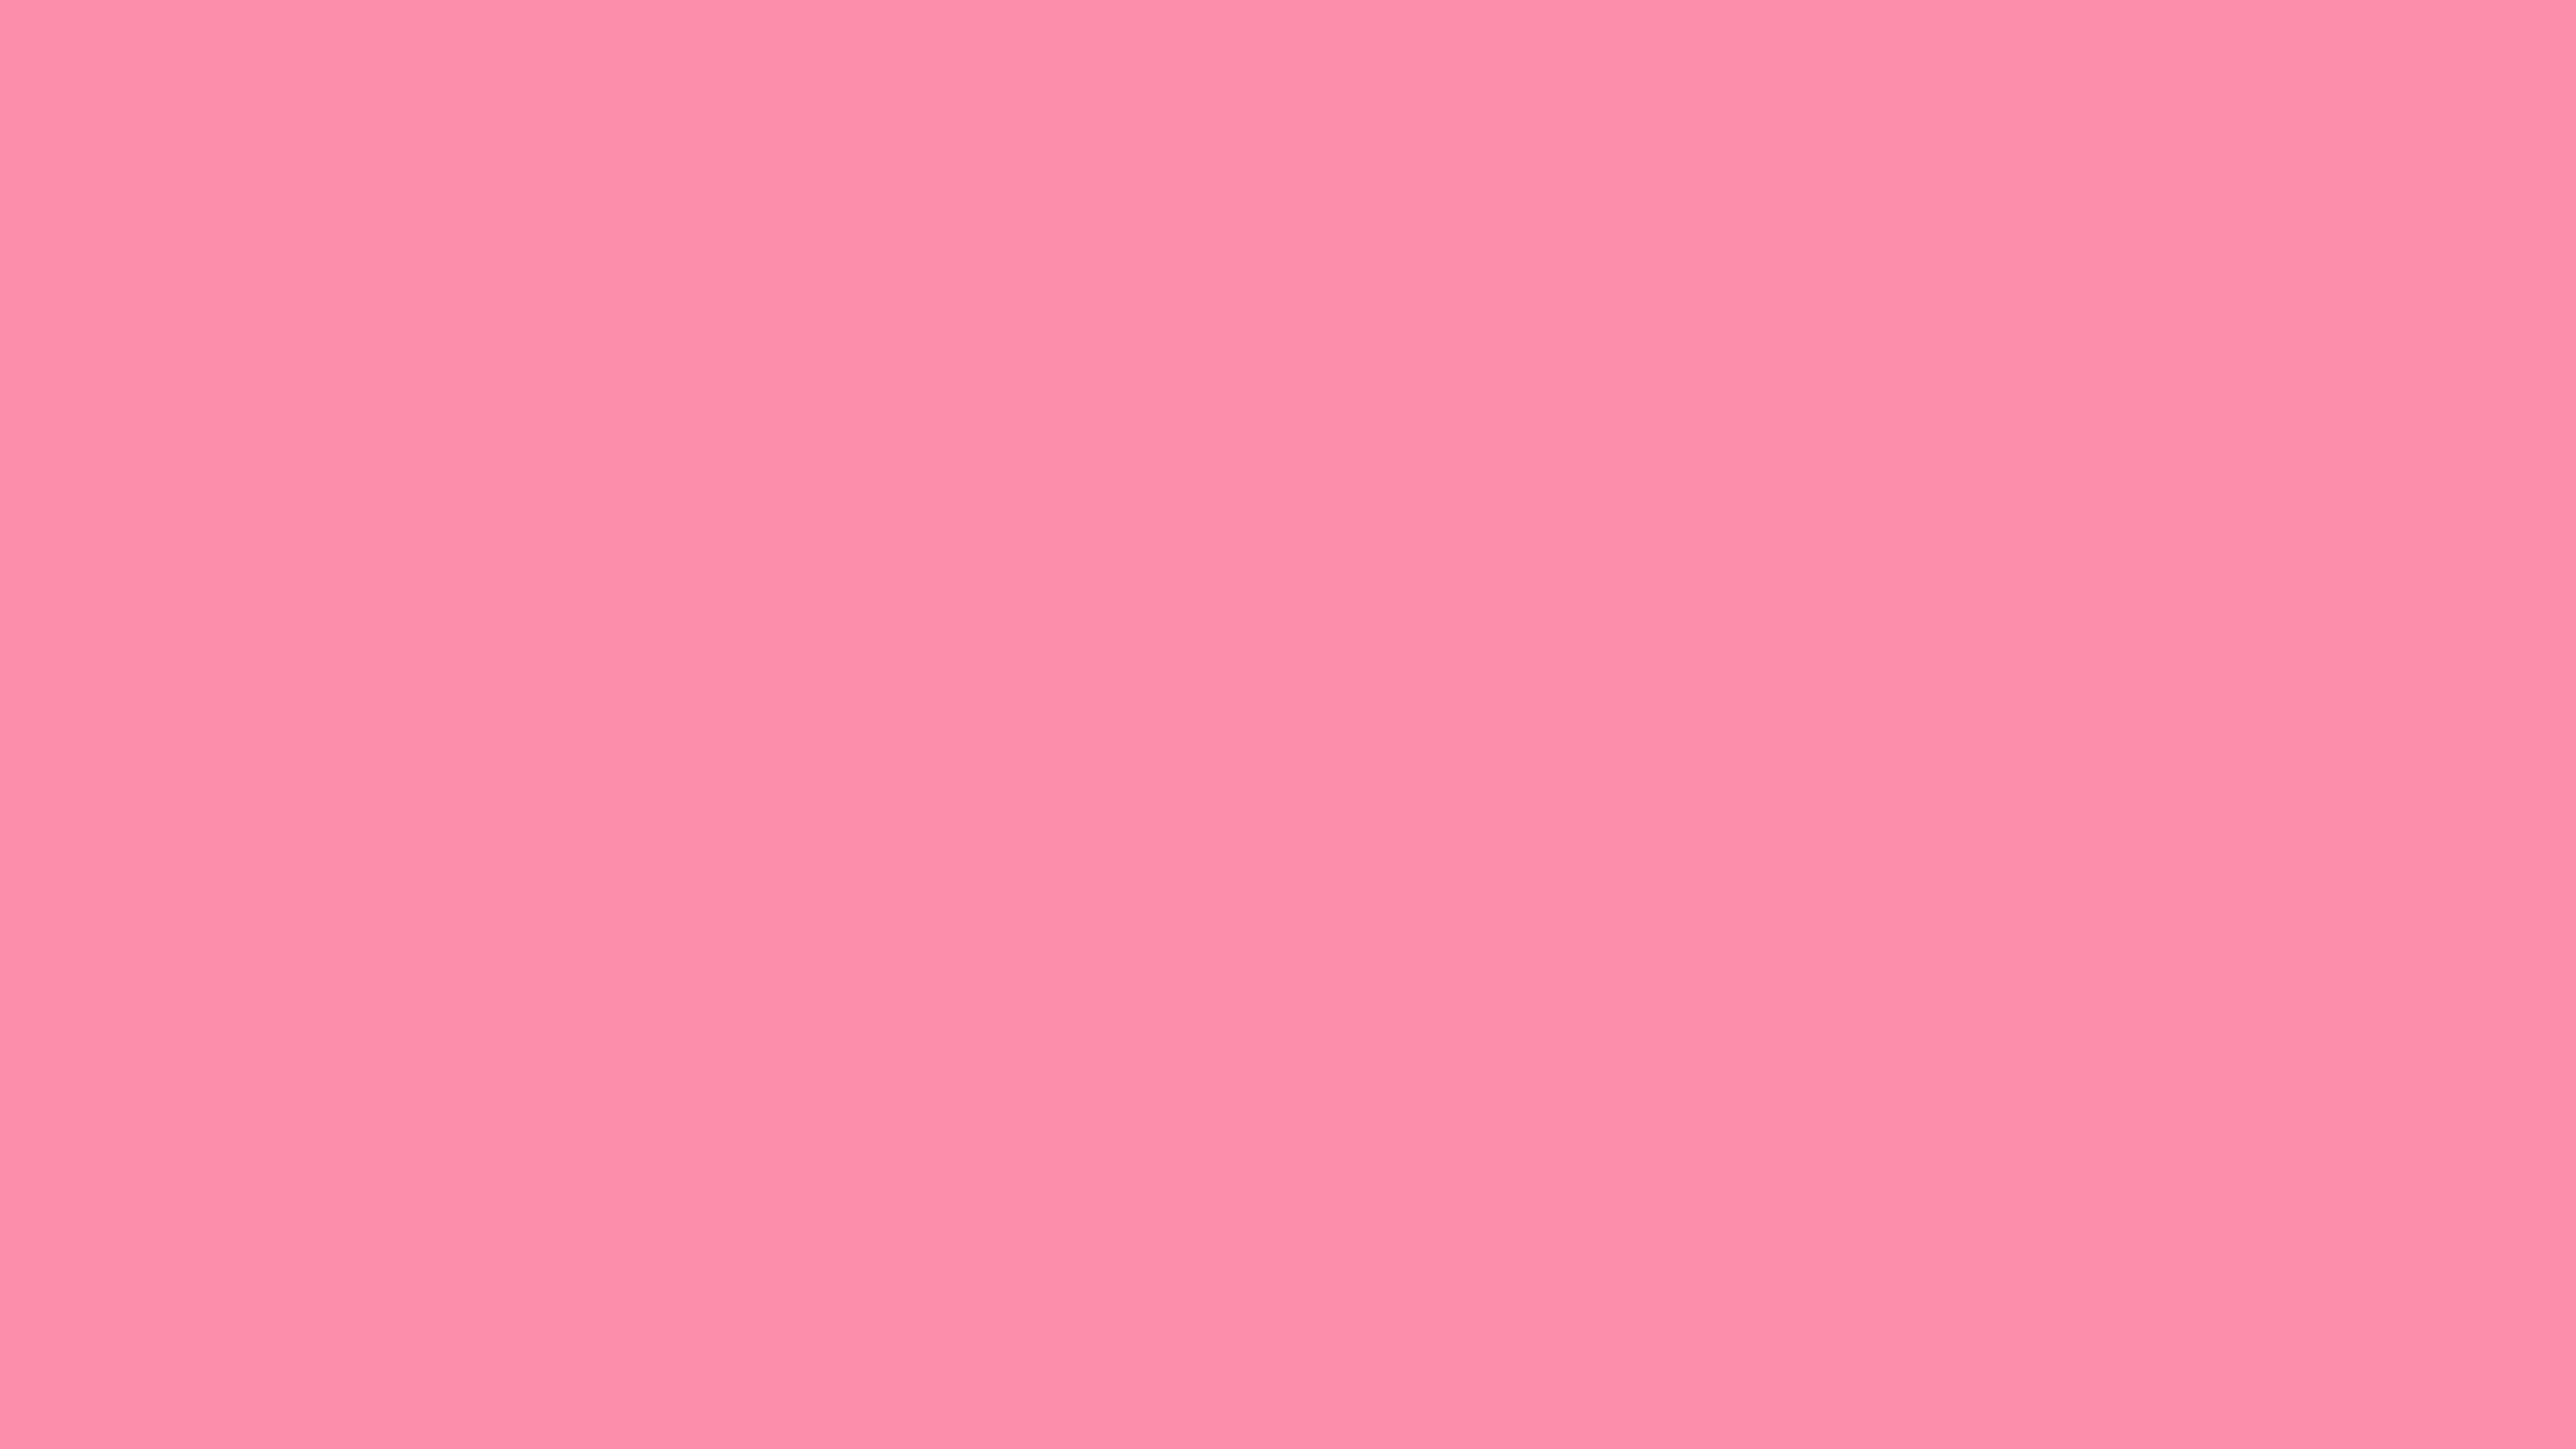 4096x2304 Flamingo Pink Solid Color Background